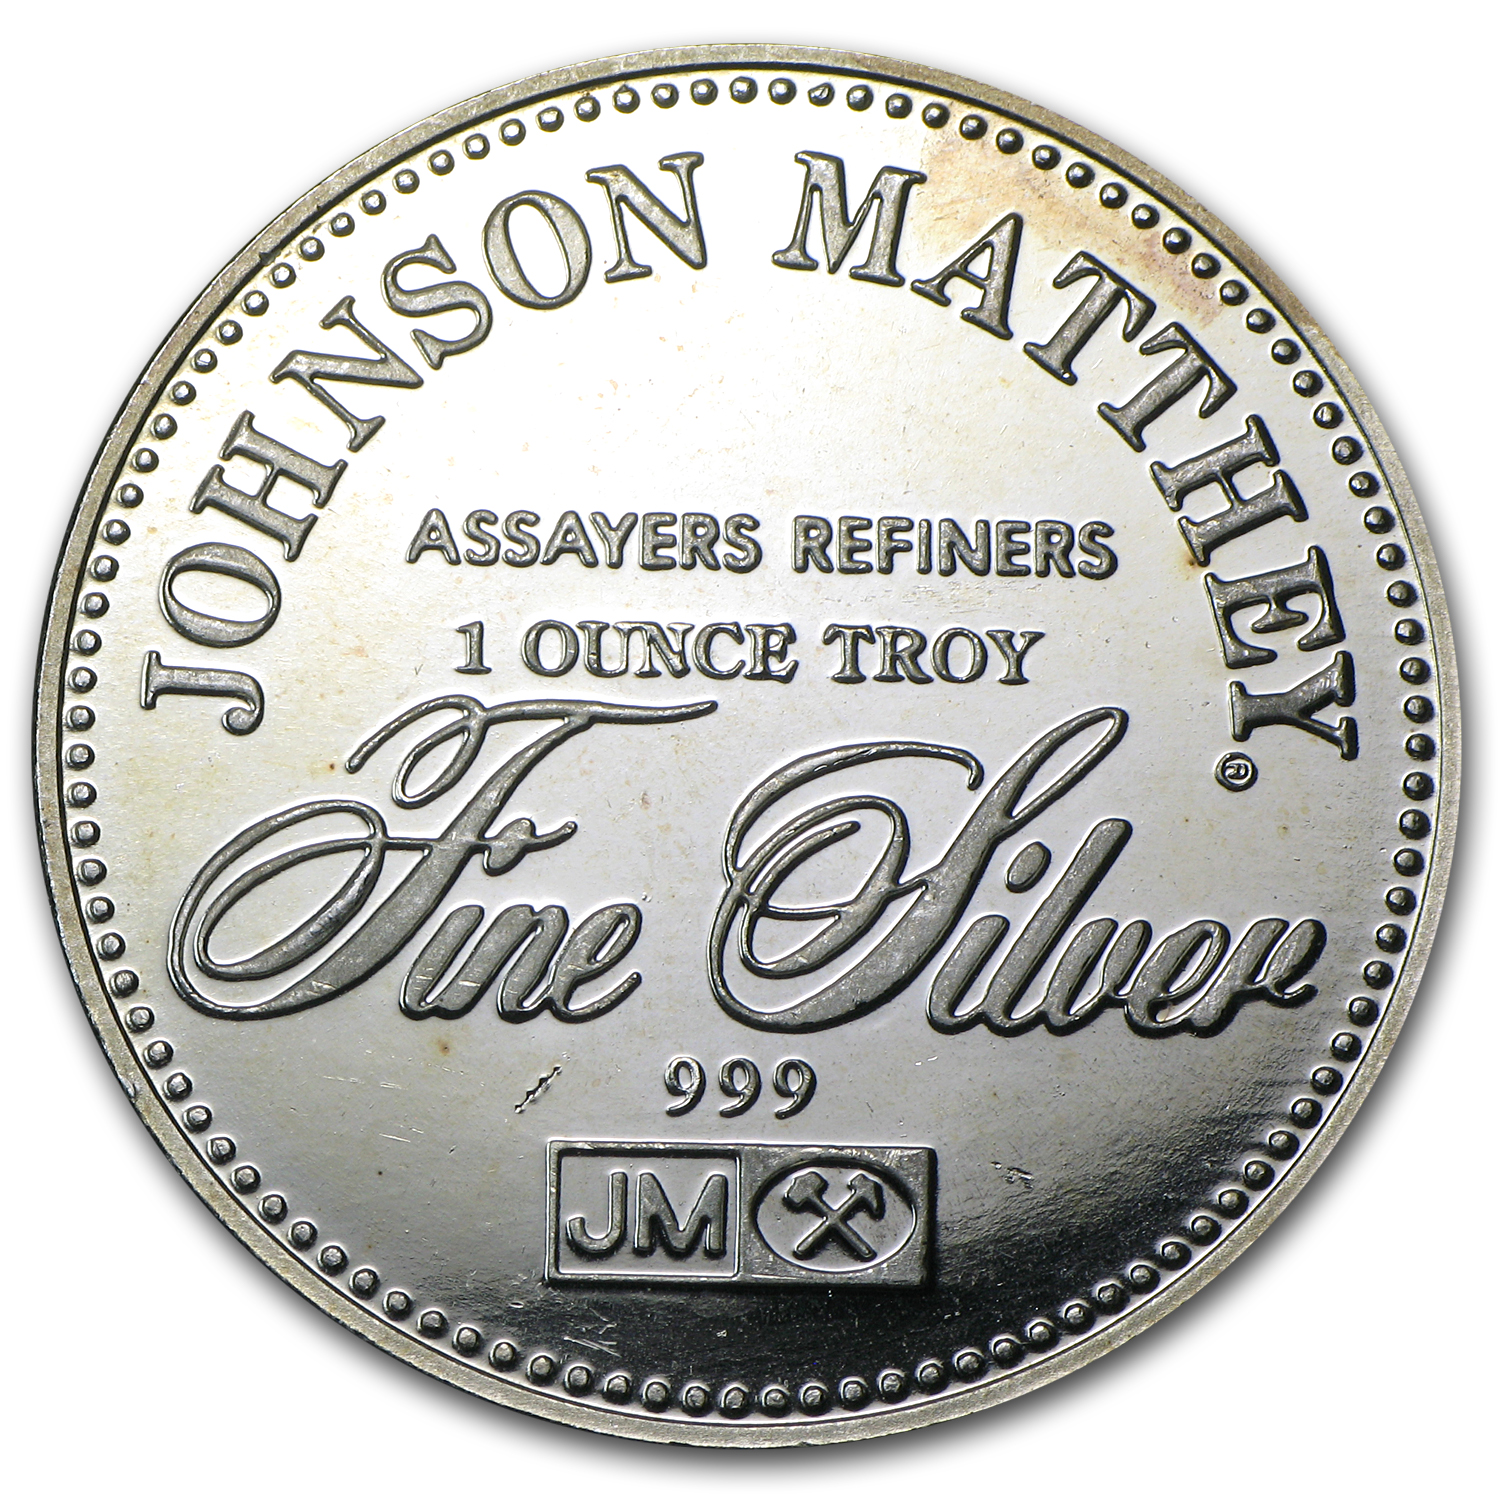 1 oz Silver Rounds - Johnson Matthey (Freedom from Slavery)